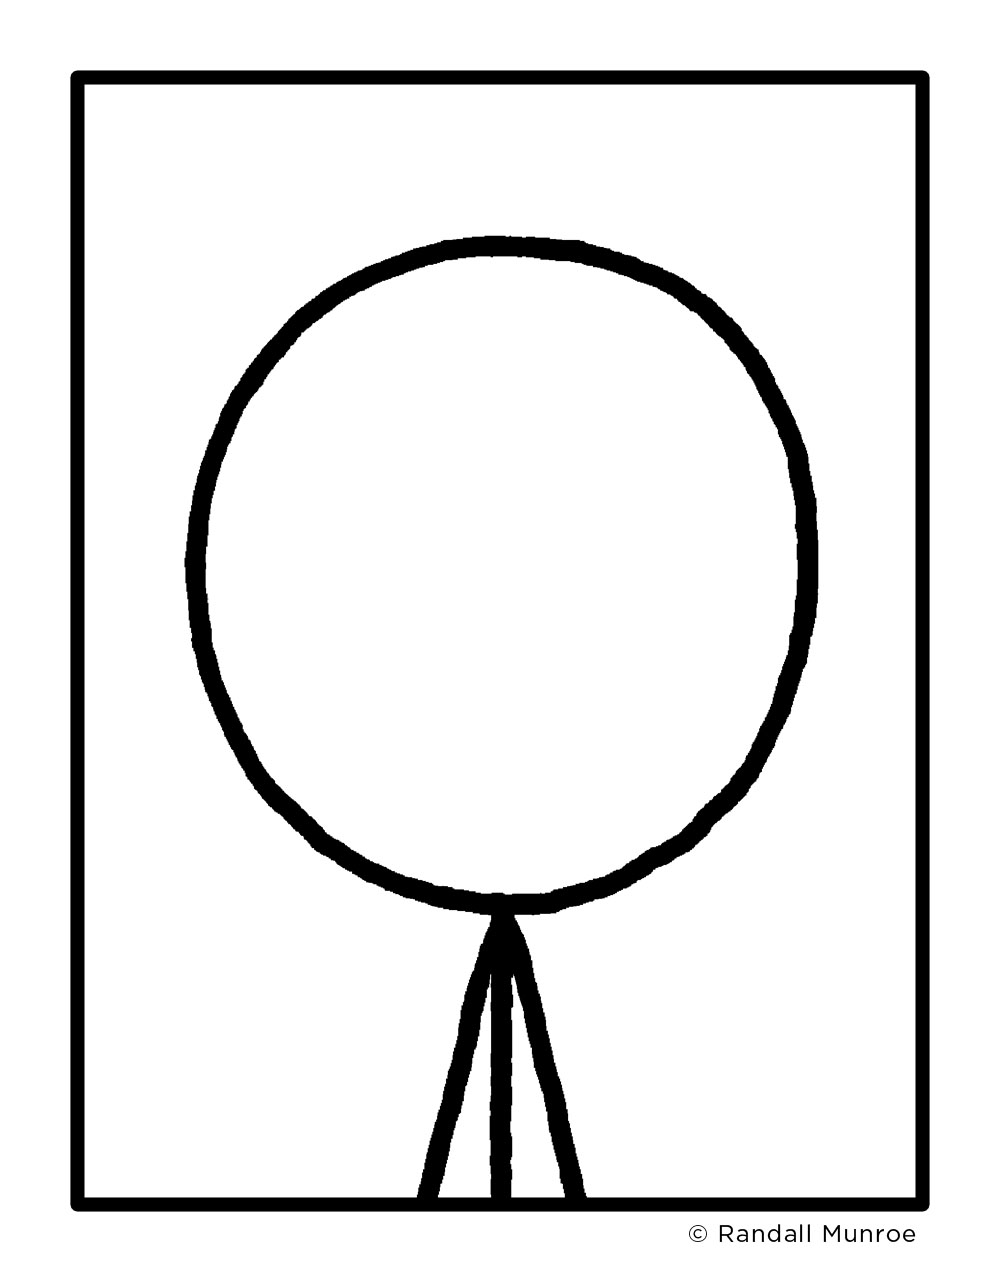 Randall Munroe Makes the Complicated Stuff Simple for Us